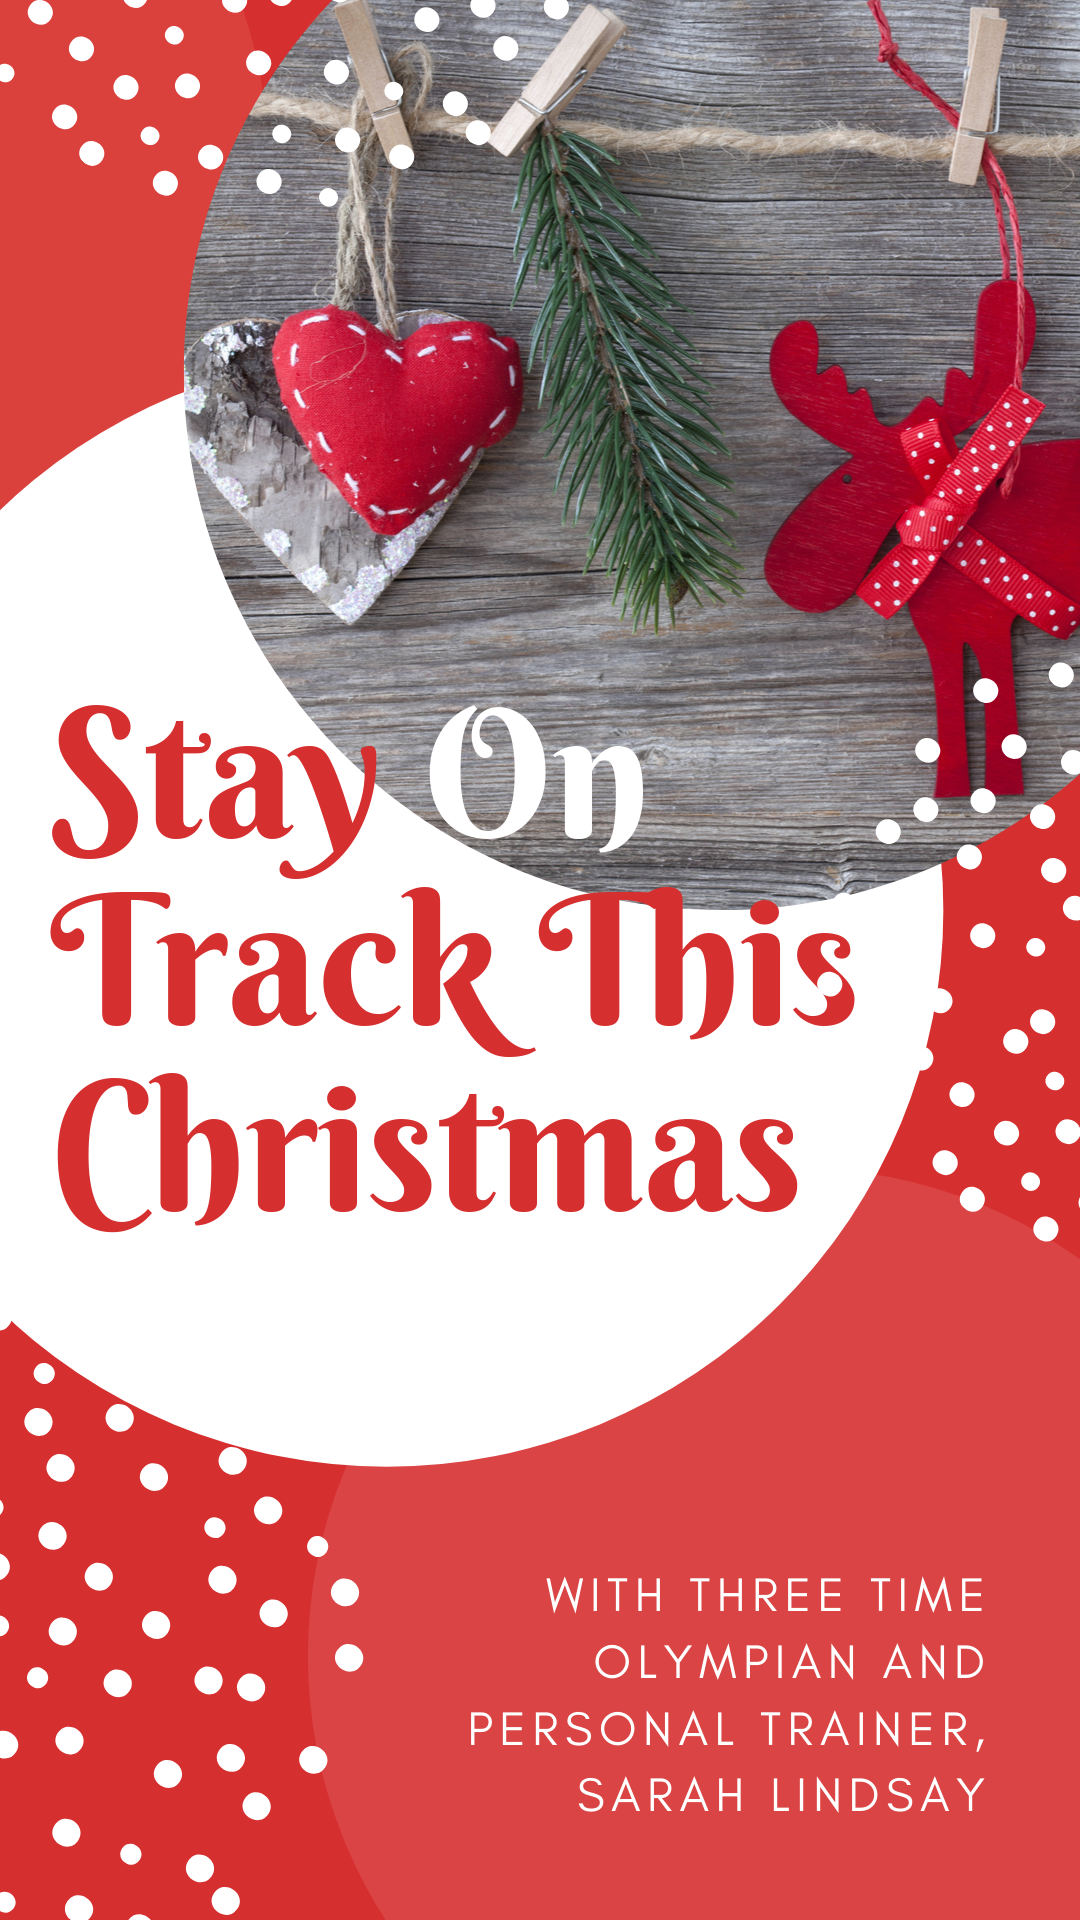 Stay On Track This Christmas With Three Time Olympian And Personal Trainer, Sarah Lindsay.